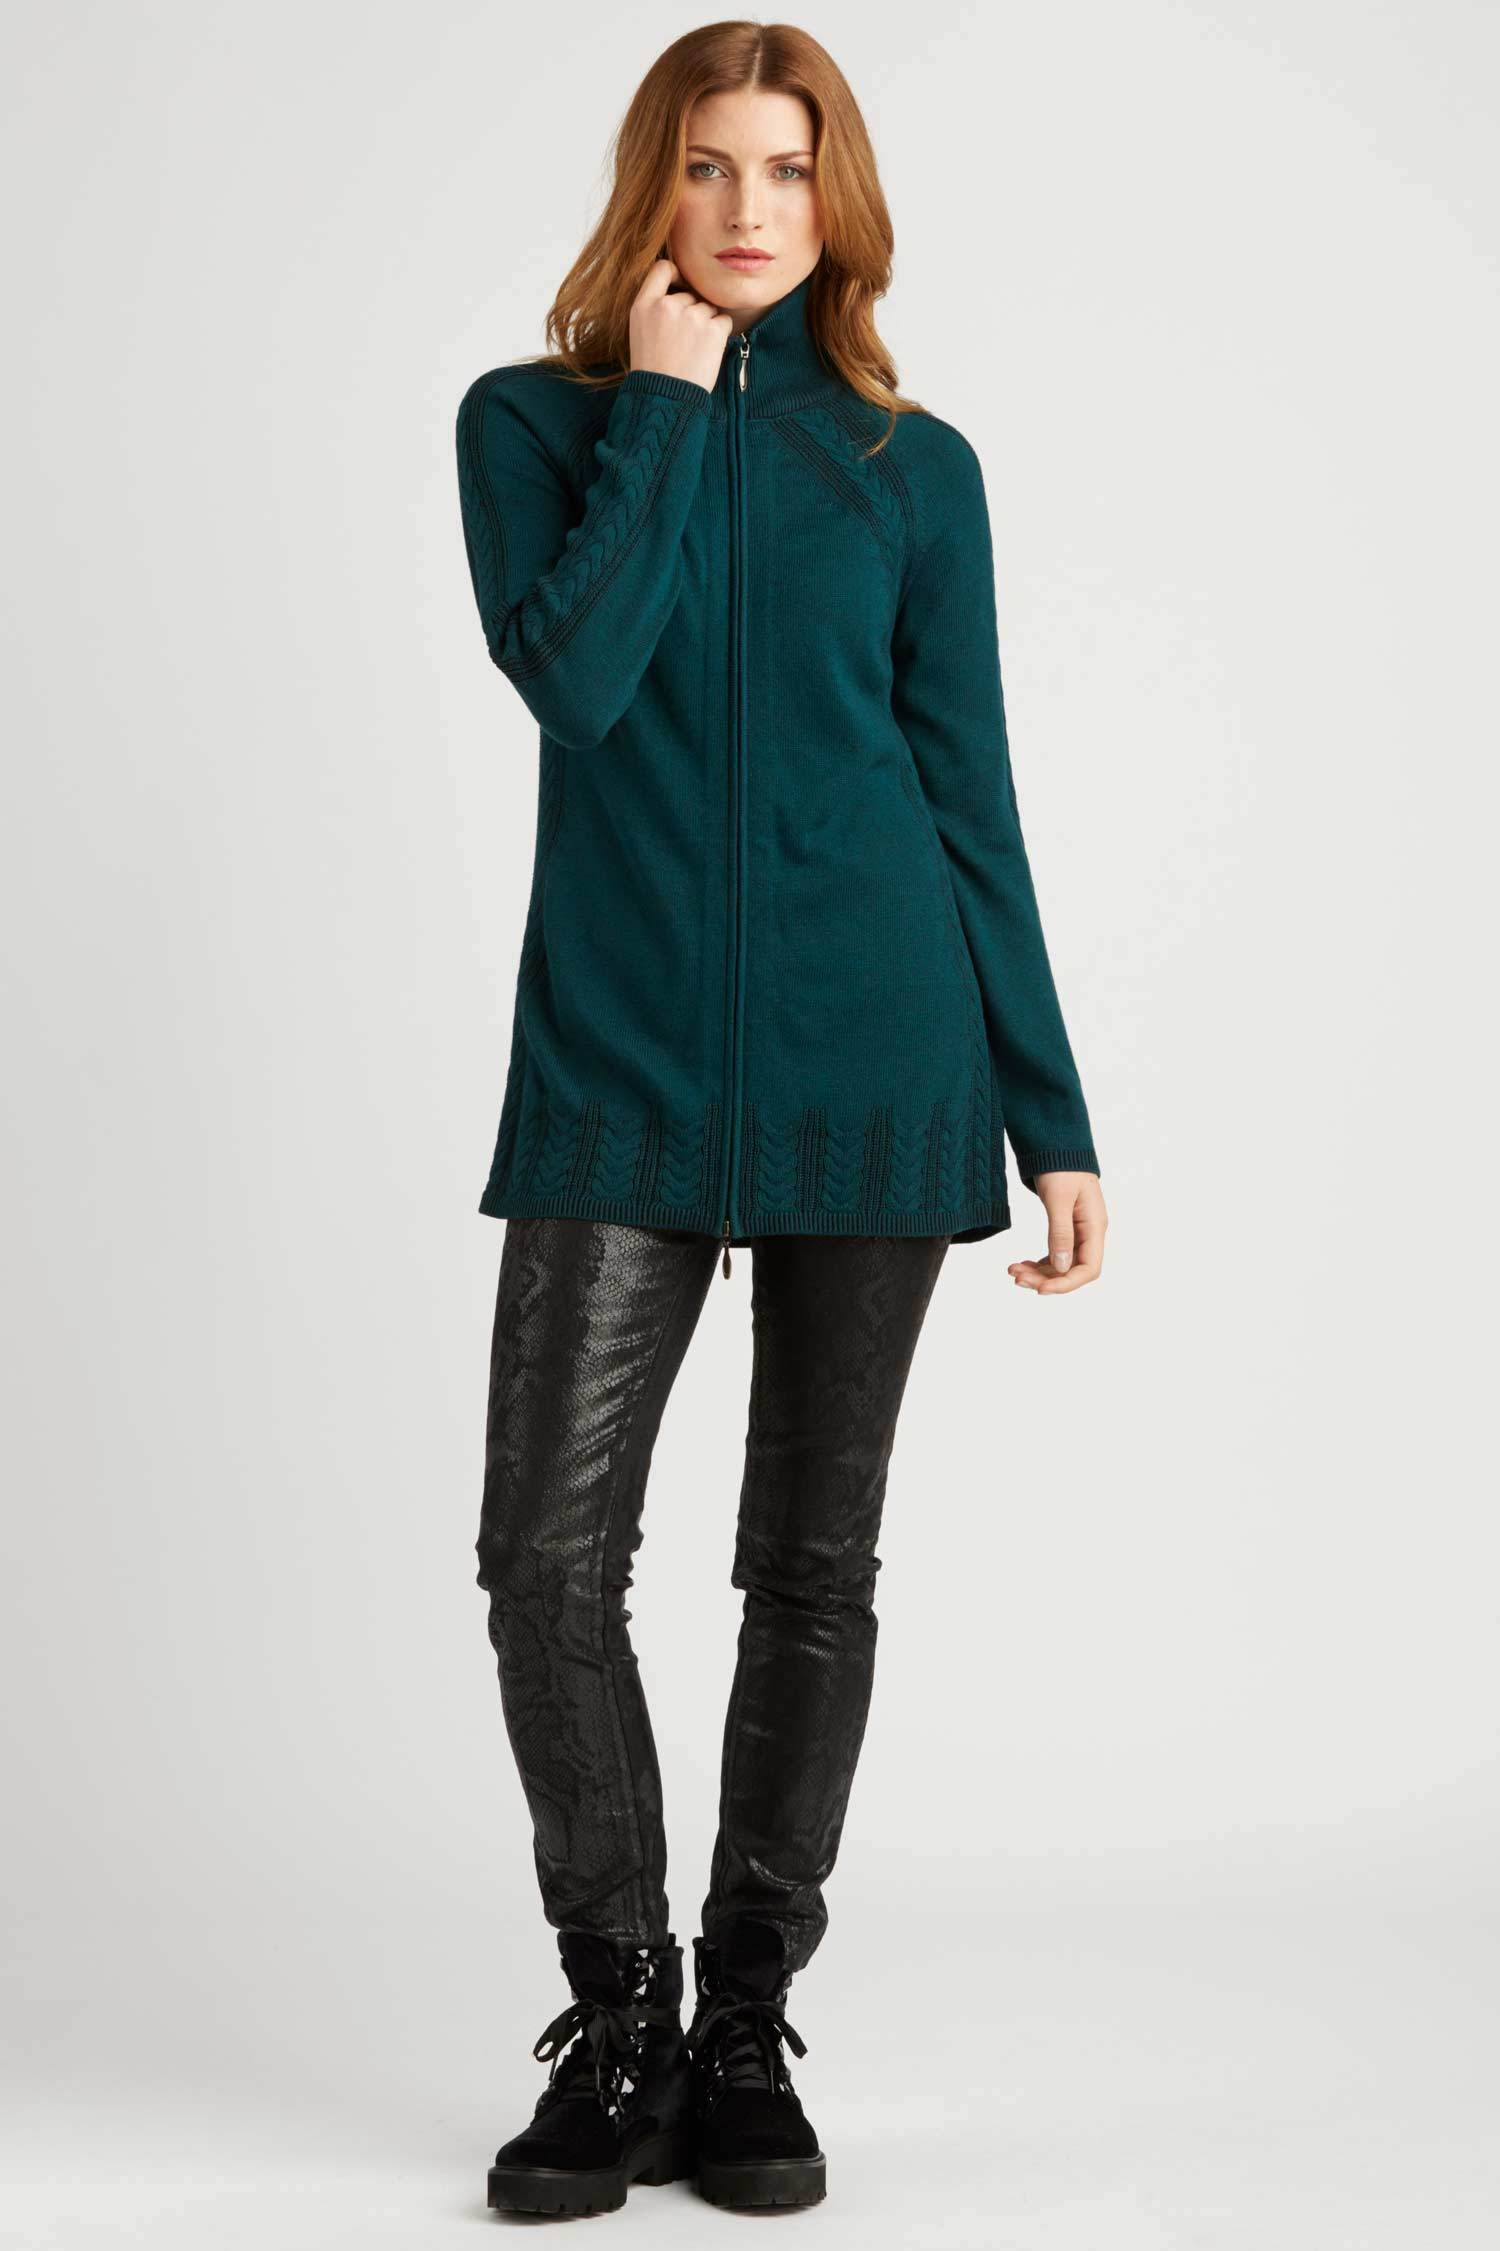 Womens Organic Cotton Sweater | Jade | Cable Zip Cardigan